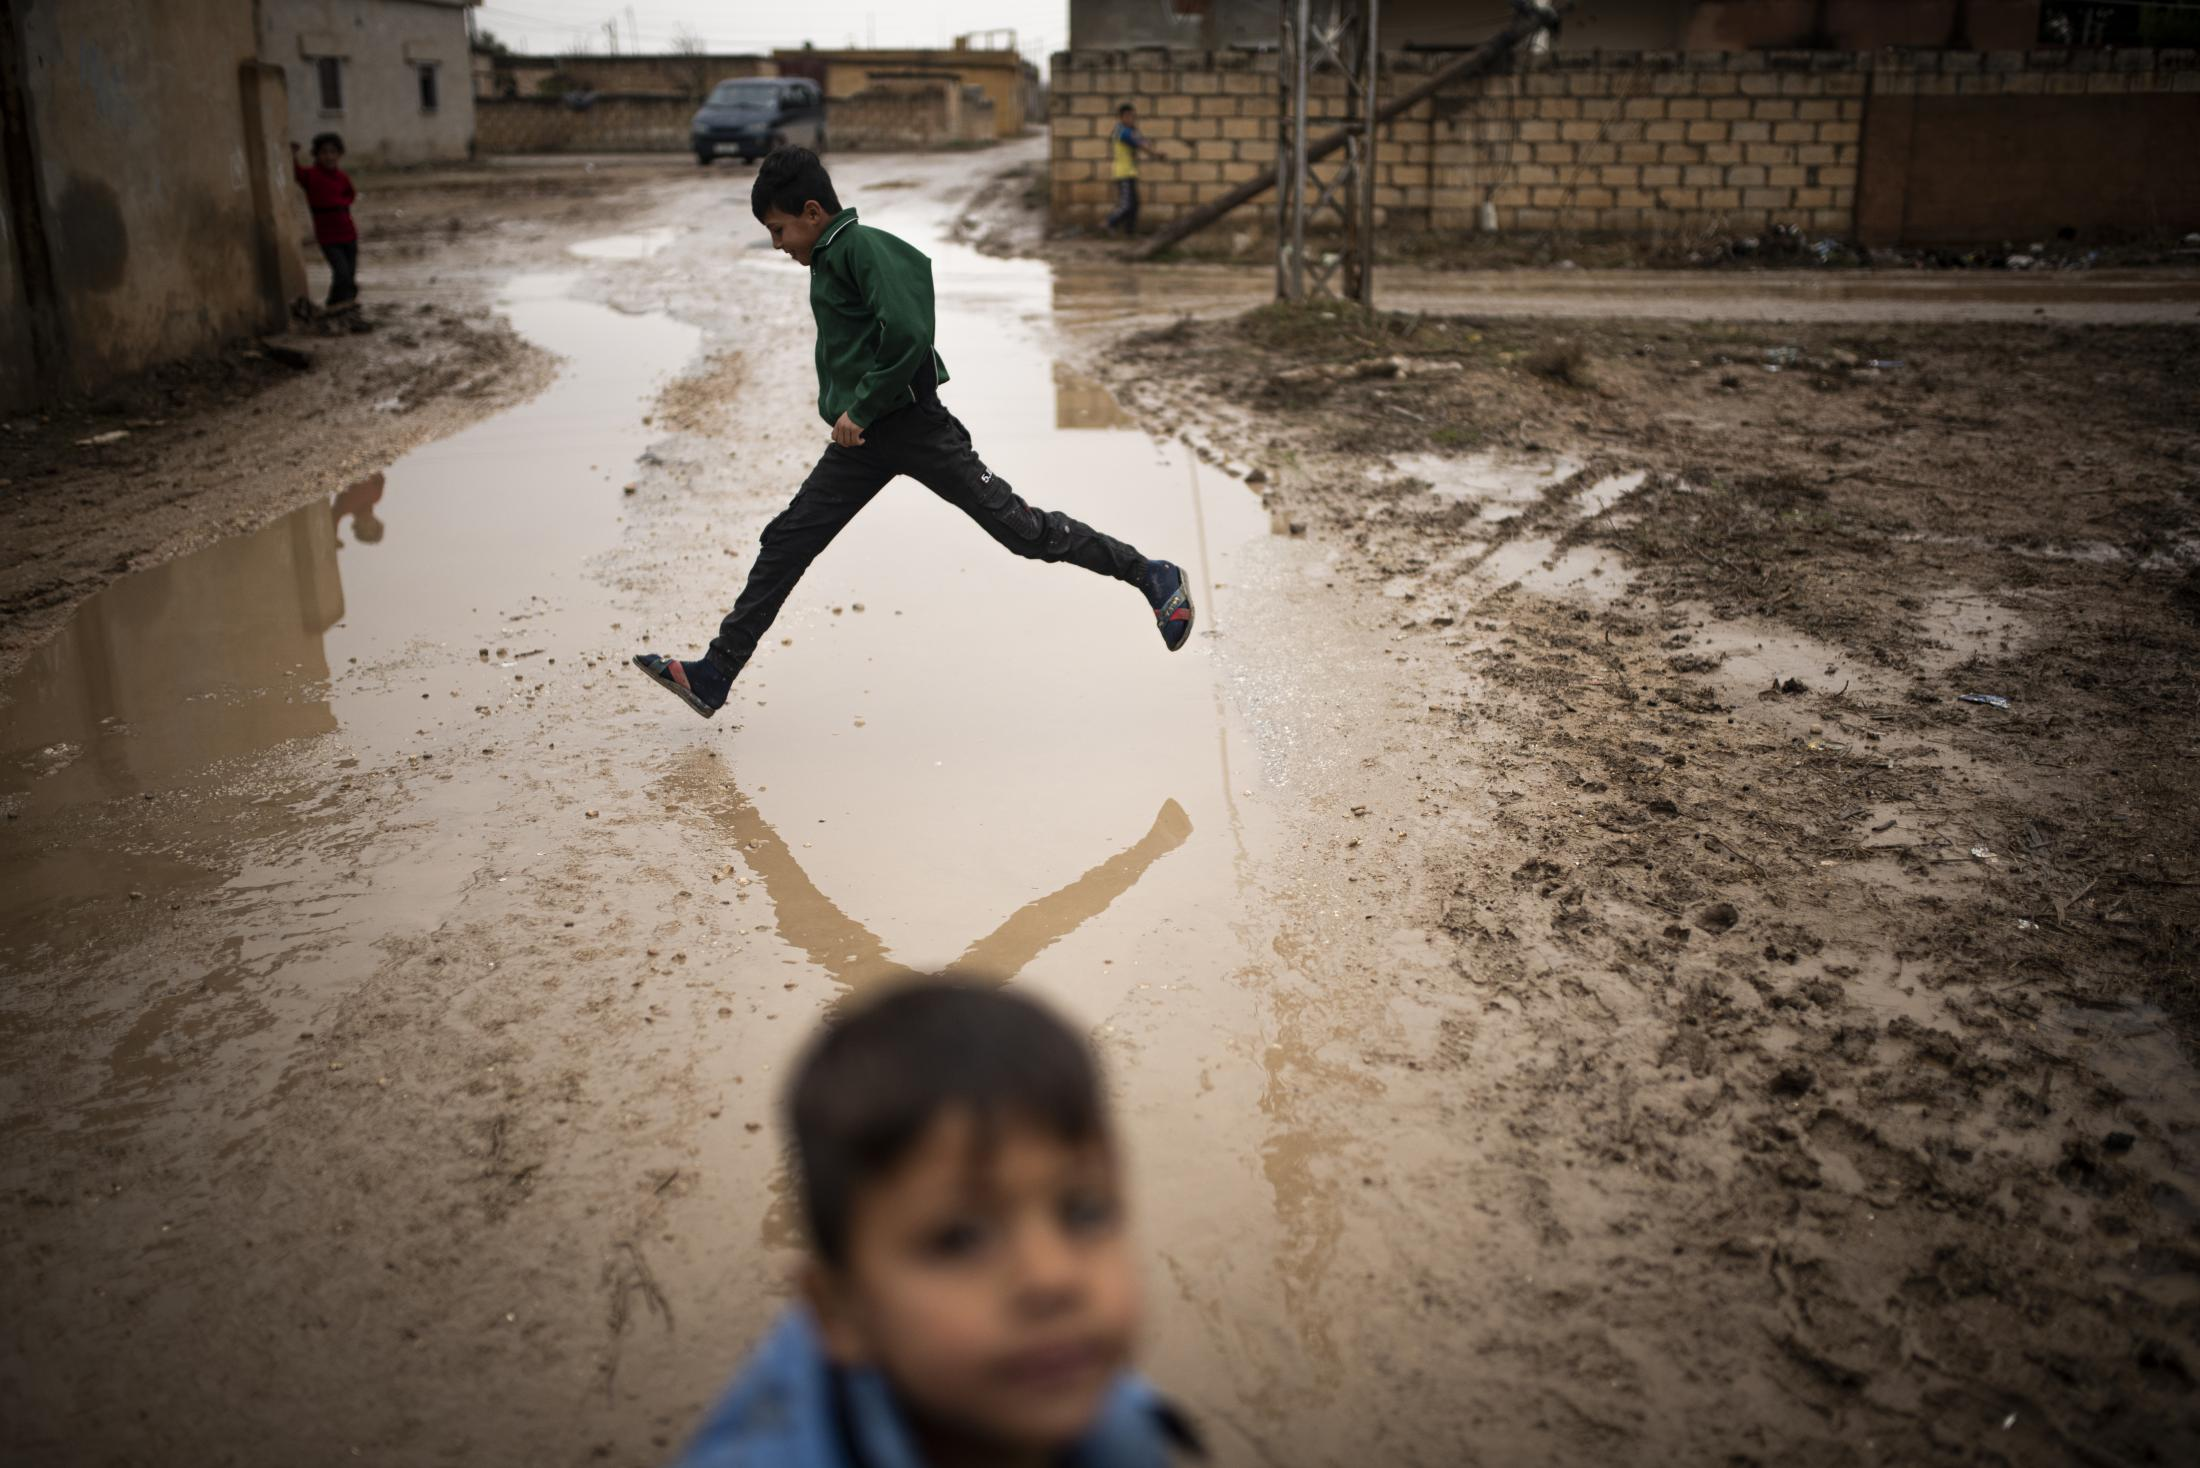 A child jumping a puddle in a street of Tel Nasri near the frontline against yihadists and Turkish Army. After the withdrawal of US troops from northern Syria in October 2019, Turkey launched an offensive against the predominantly Kurdish areas in the northeast of the country along Islamist forces. Calls for war crimes investigations into the conduct of Ankara-backed militias are mounting ever since. (Andoni Lubaki / Euskal Fondoa)